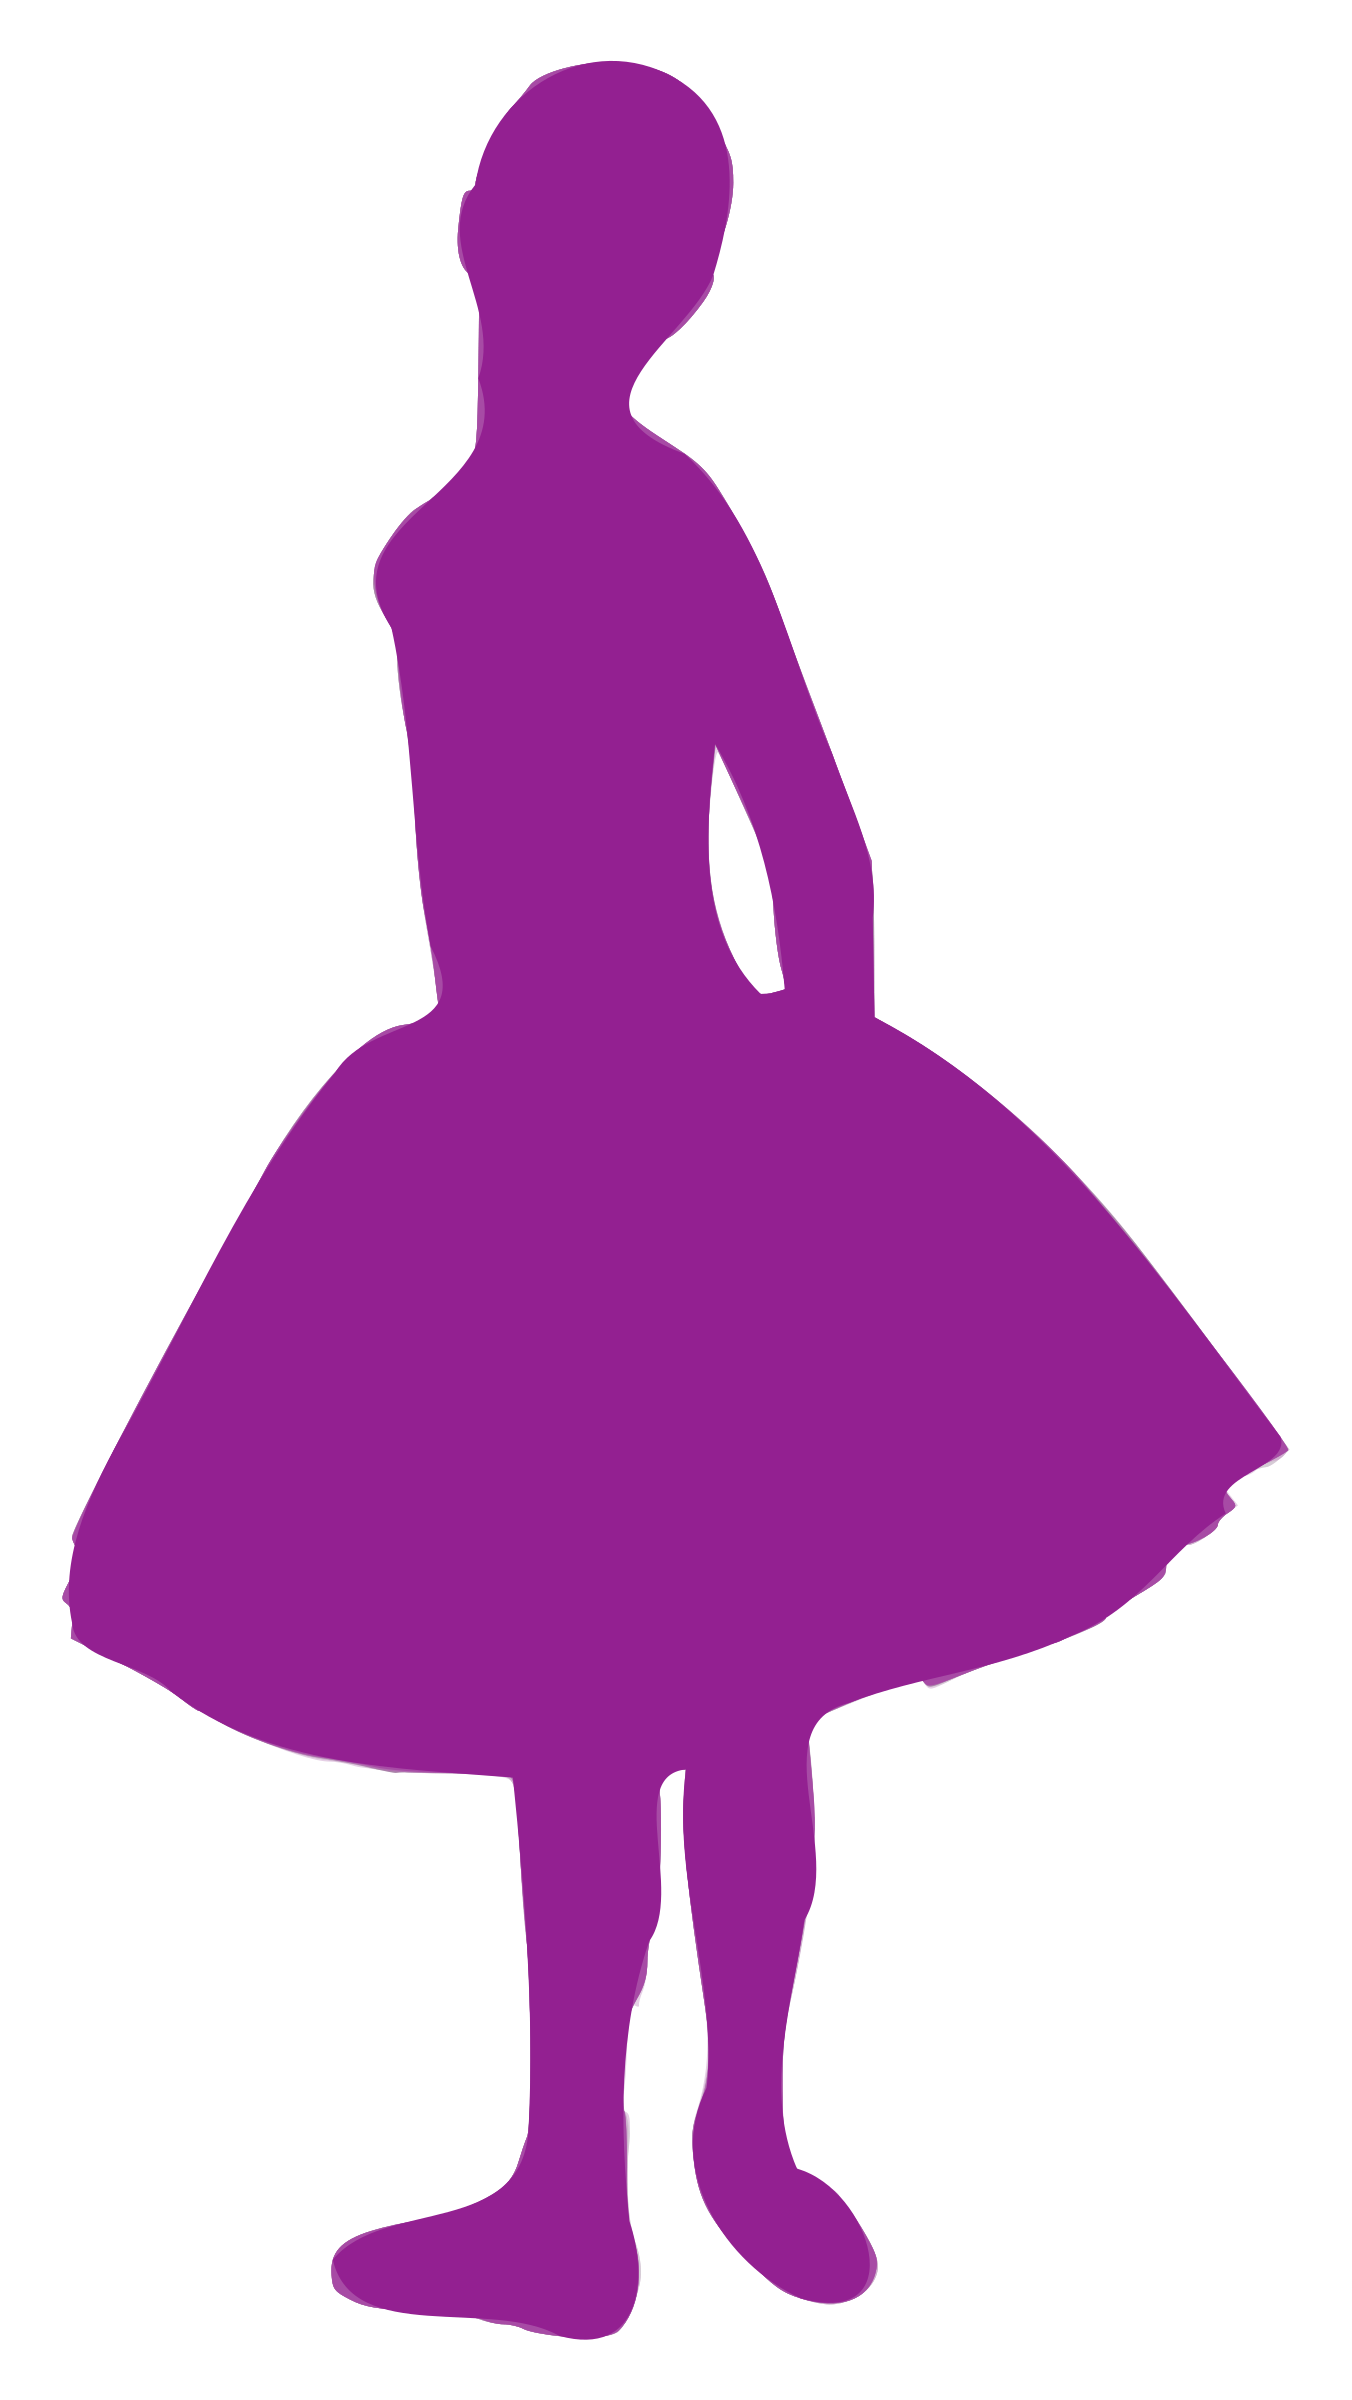 banner download Tutu Silhouette Clip Art at GetDrawings